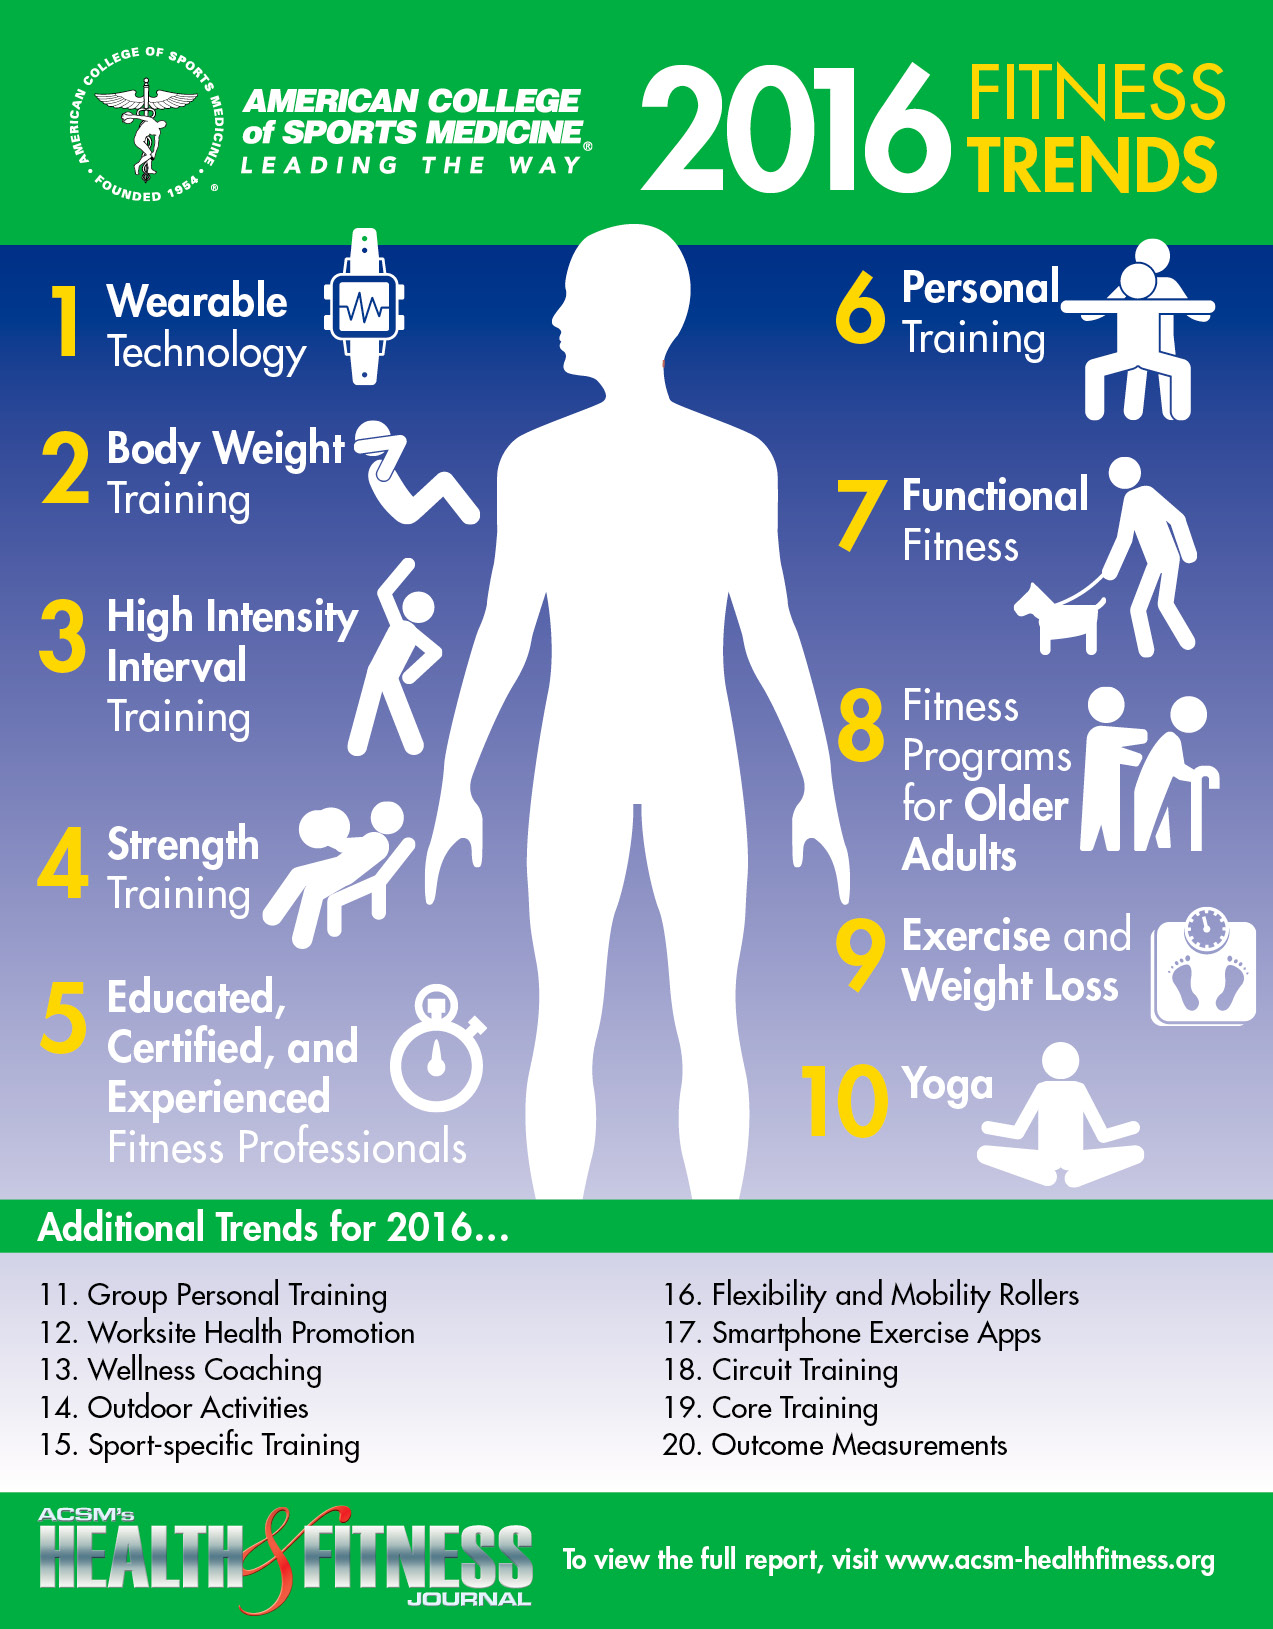 2016-fitness-trends-infographic.jpg